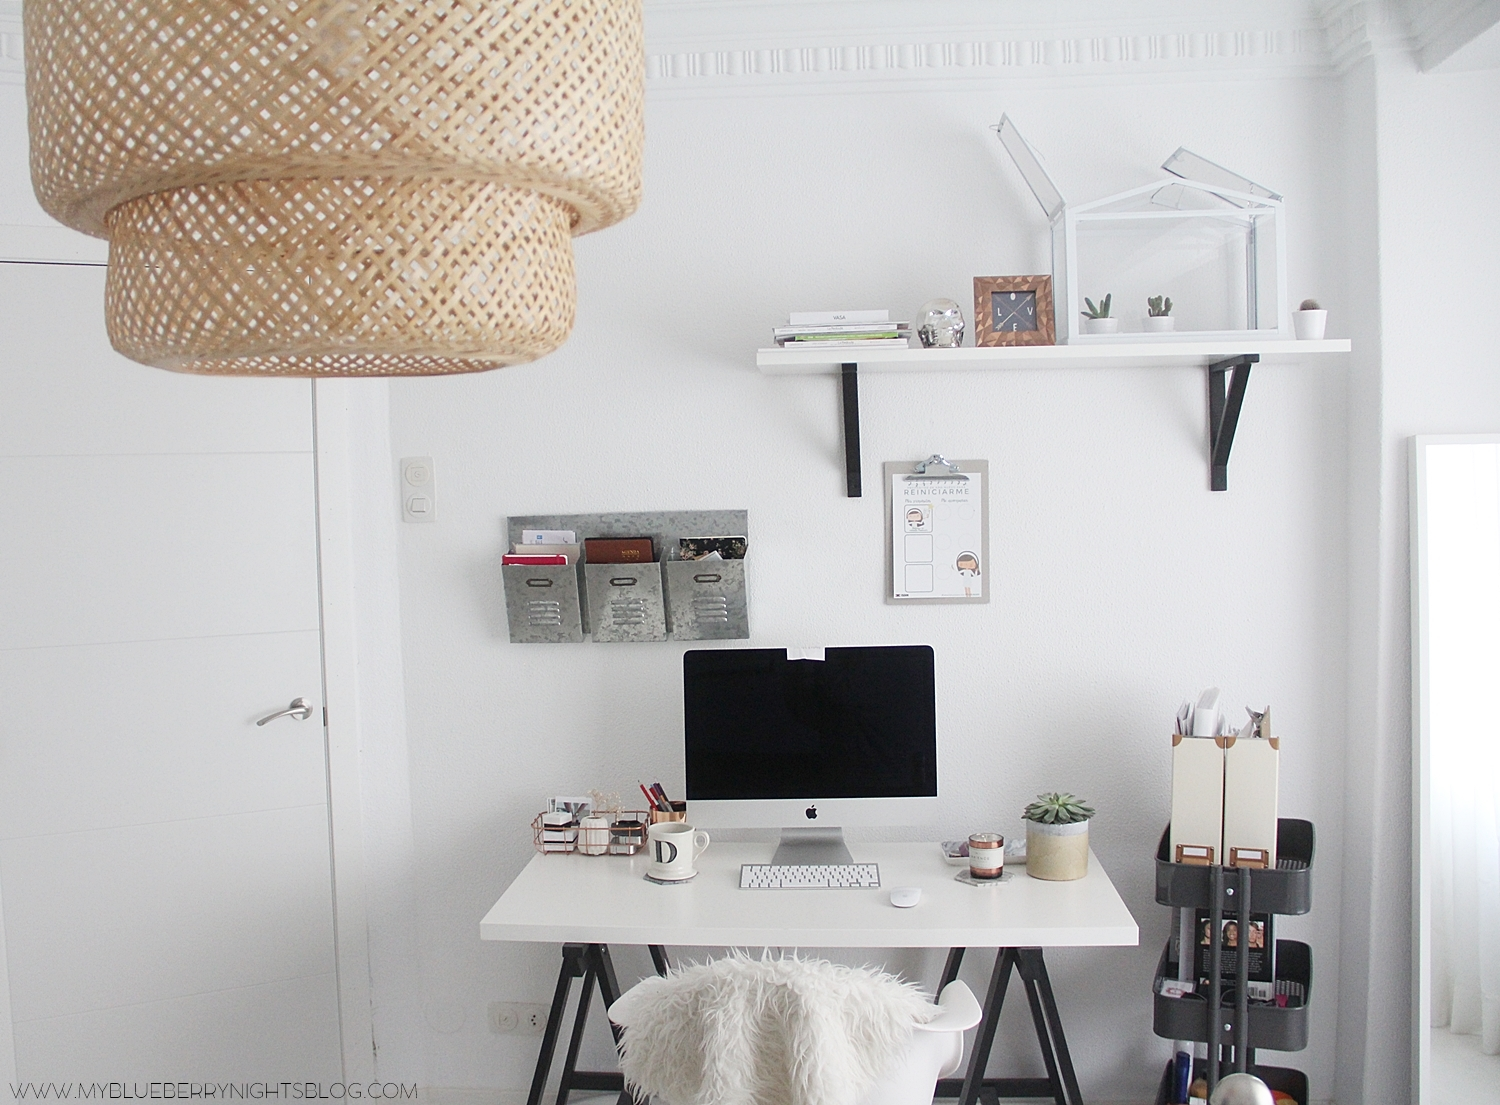 workspace-lowcost-mac-tower-chair-deco-nordic-sinnerlig-lamp-myblueberrynightshome